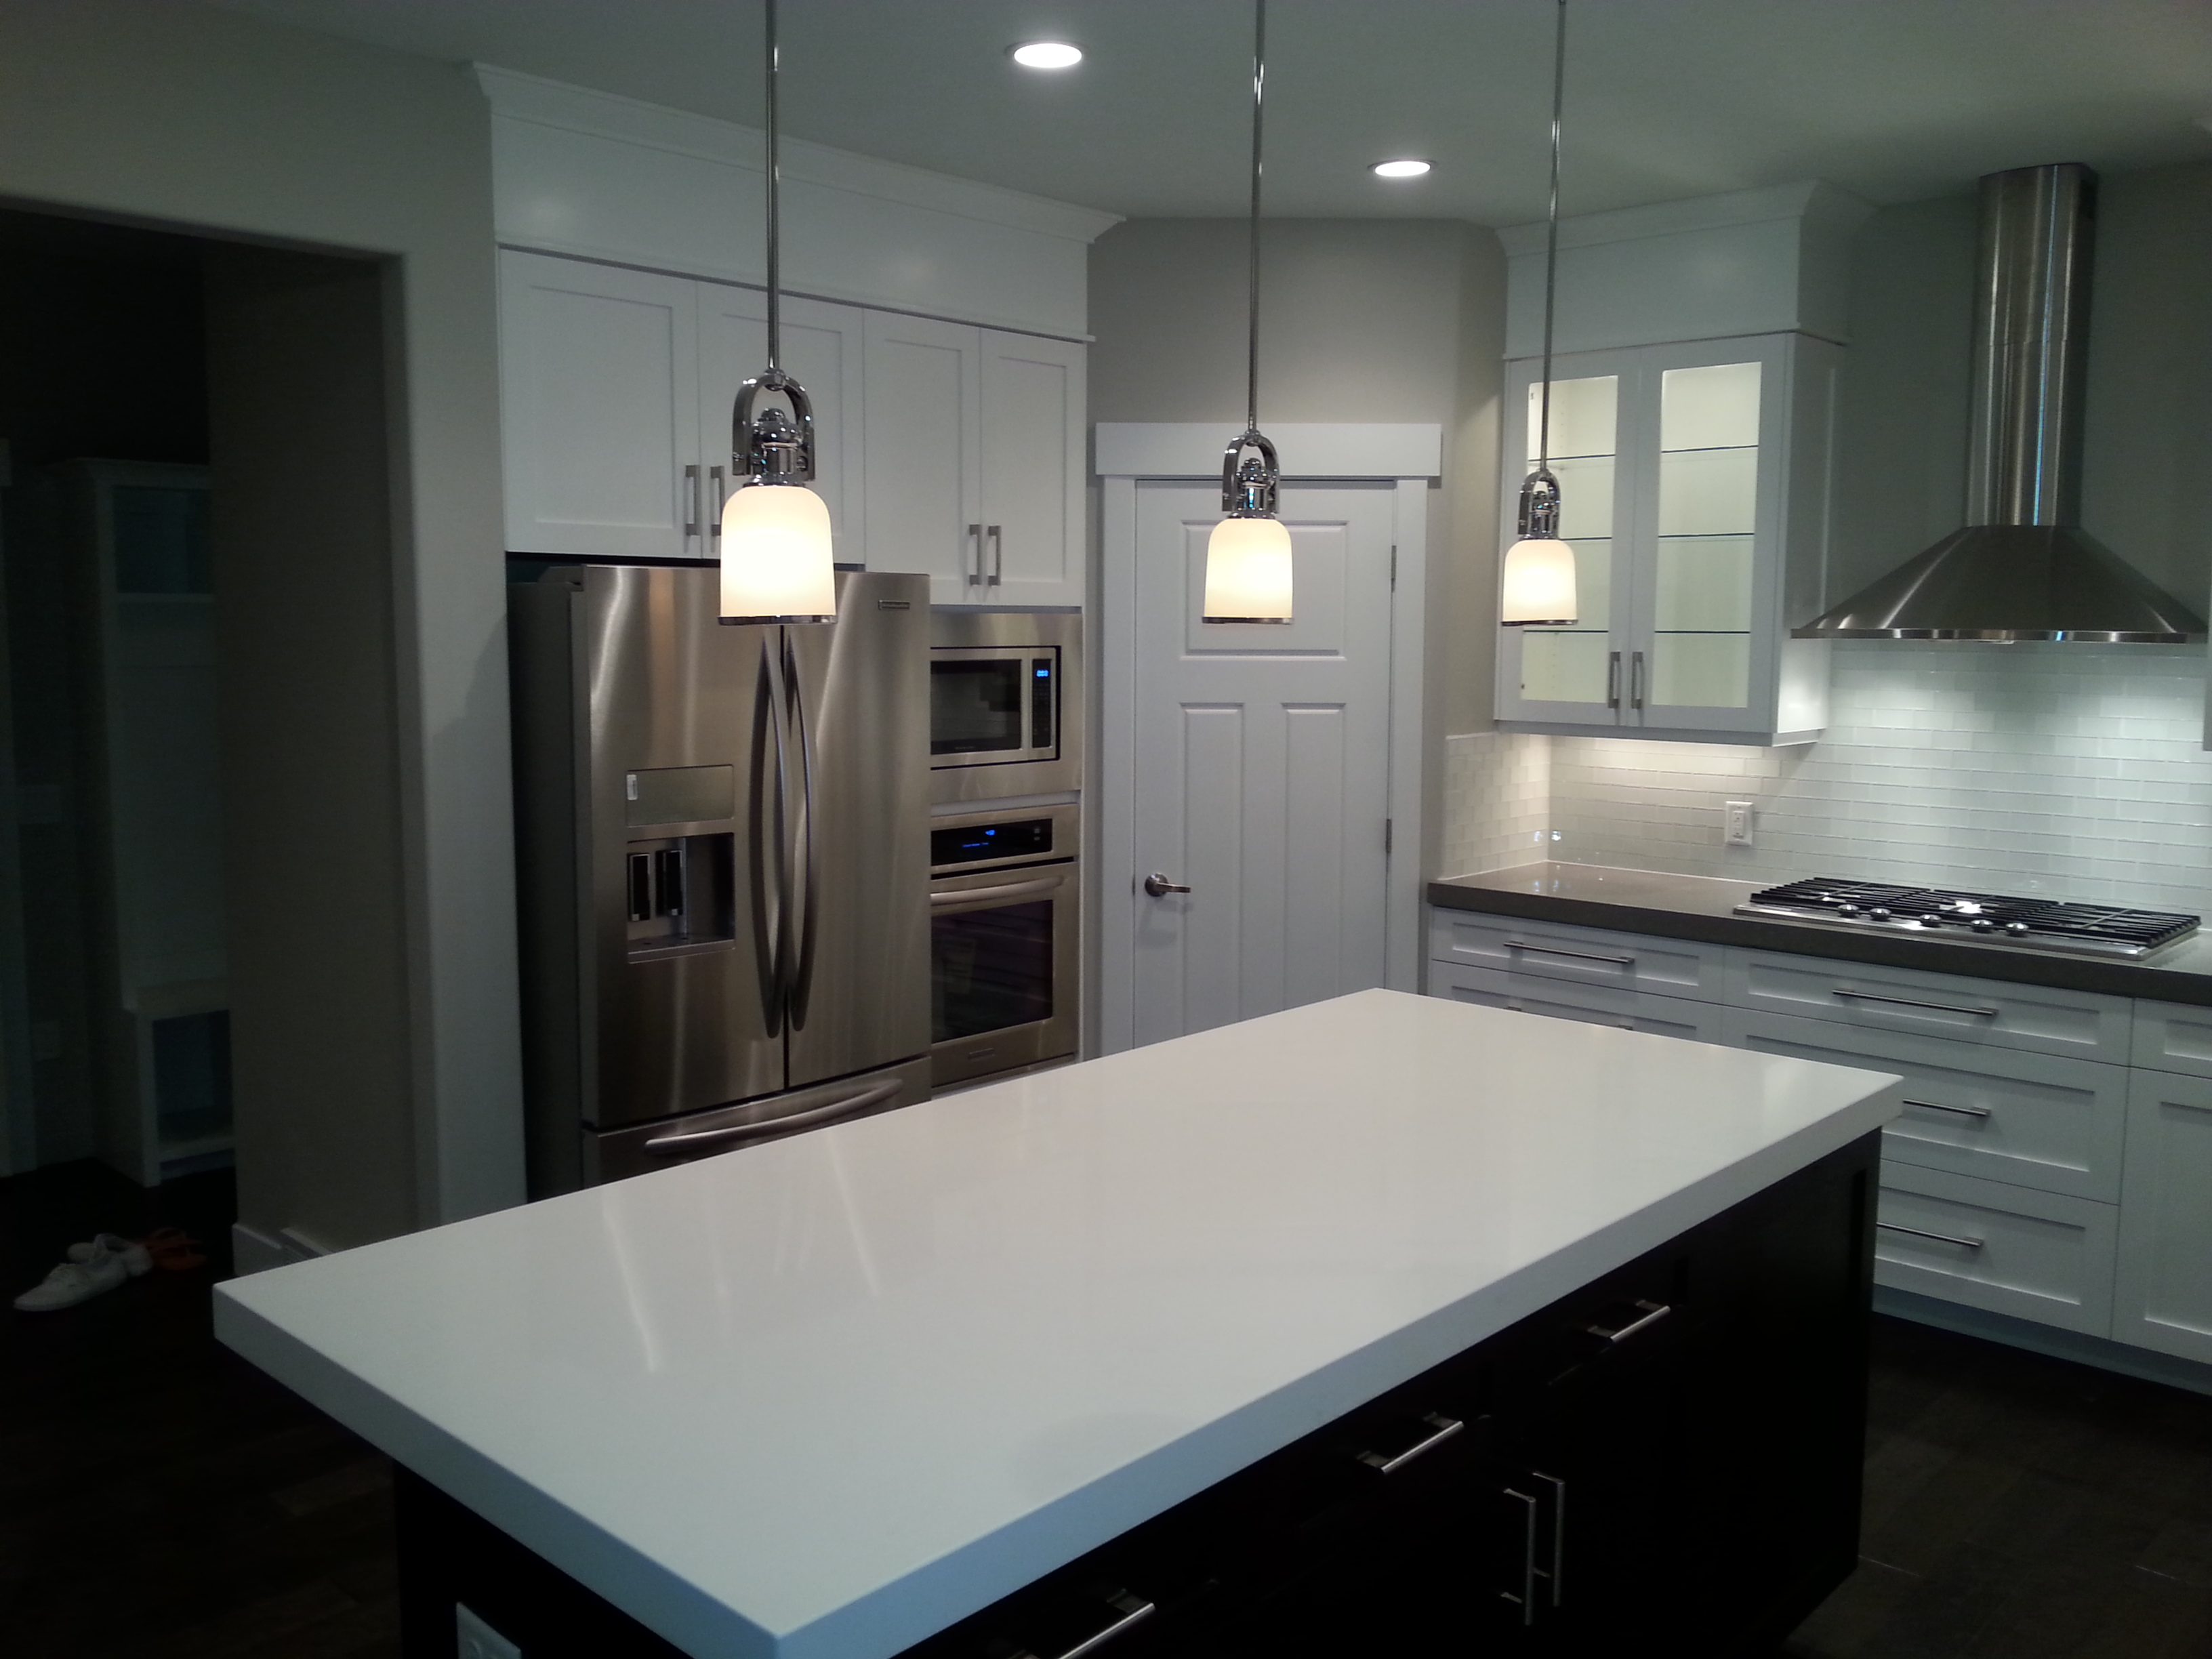 Countertops The Utah Cabinet Company